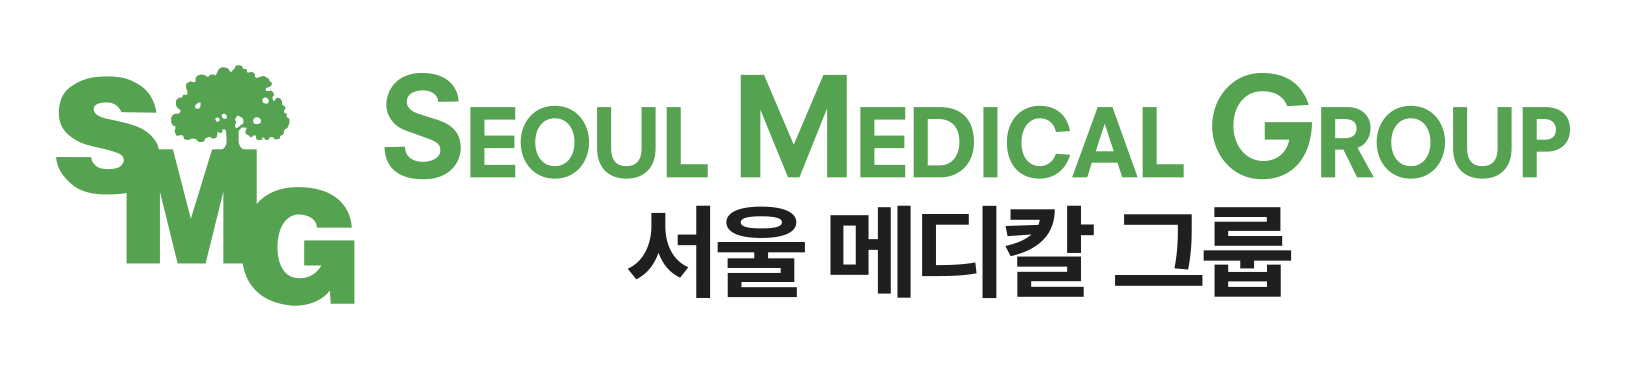 Seoul Medical Group logo